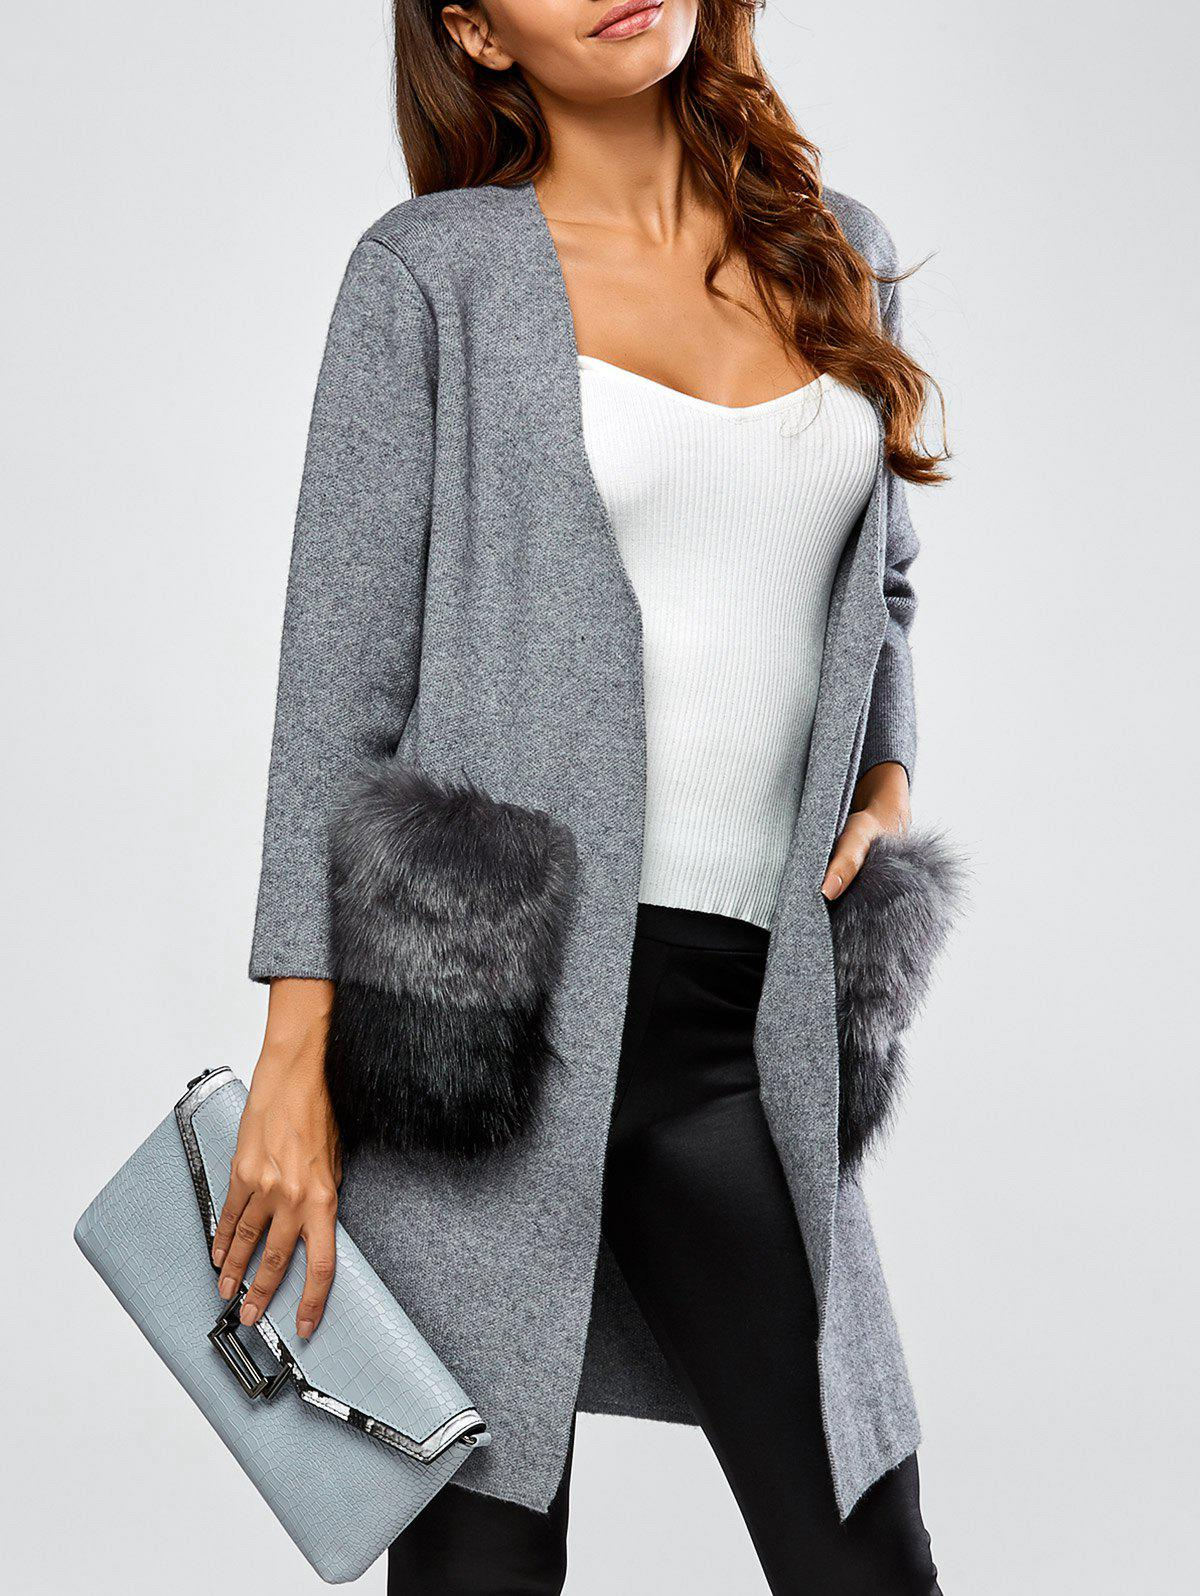 Open Front Pockets Cardigan - GRAY ONE SIZE